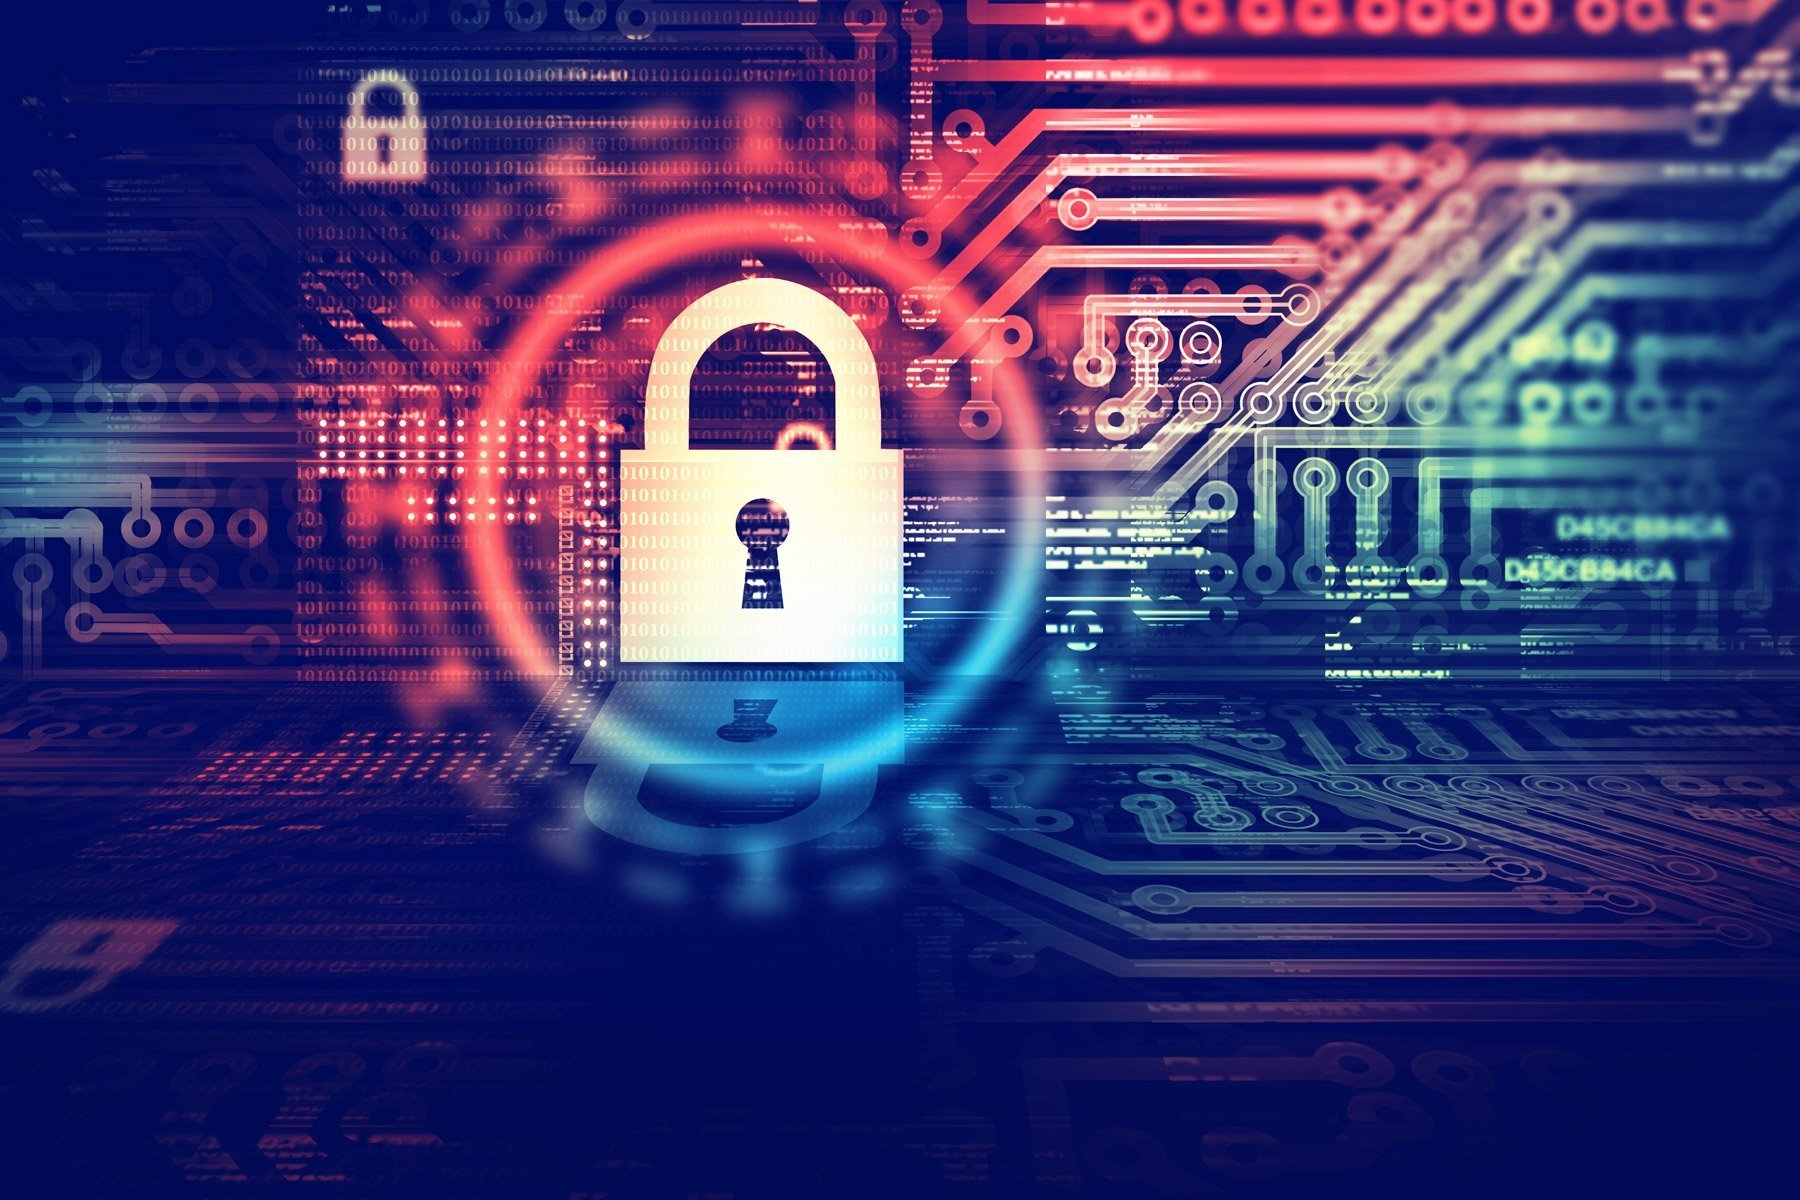 Stream Data Centers Announces Payment Card Industry Data Security